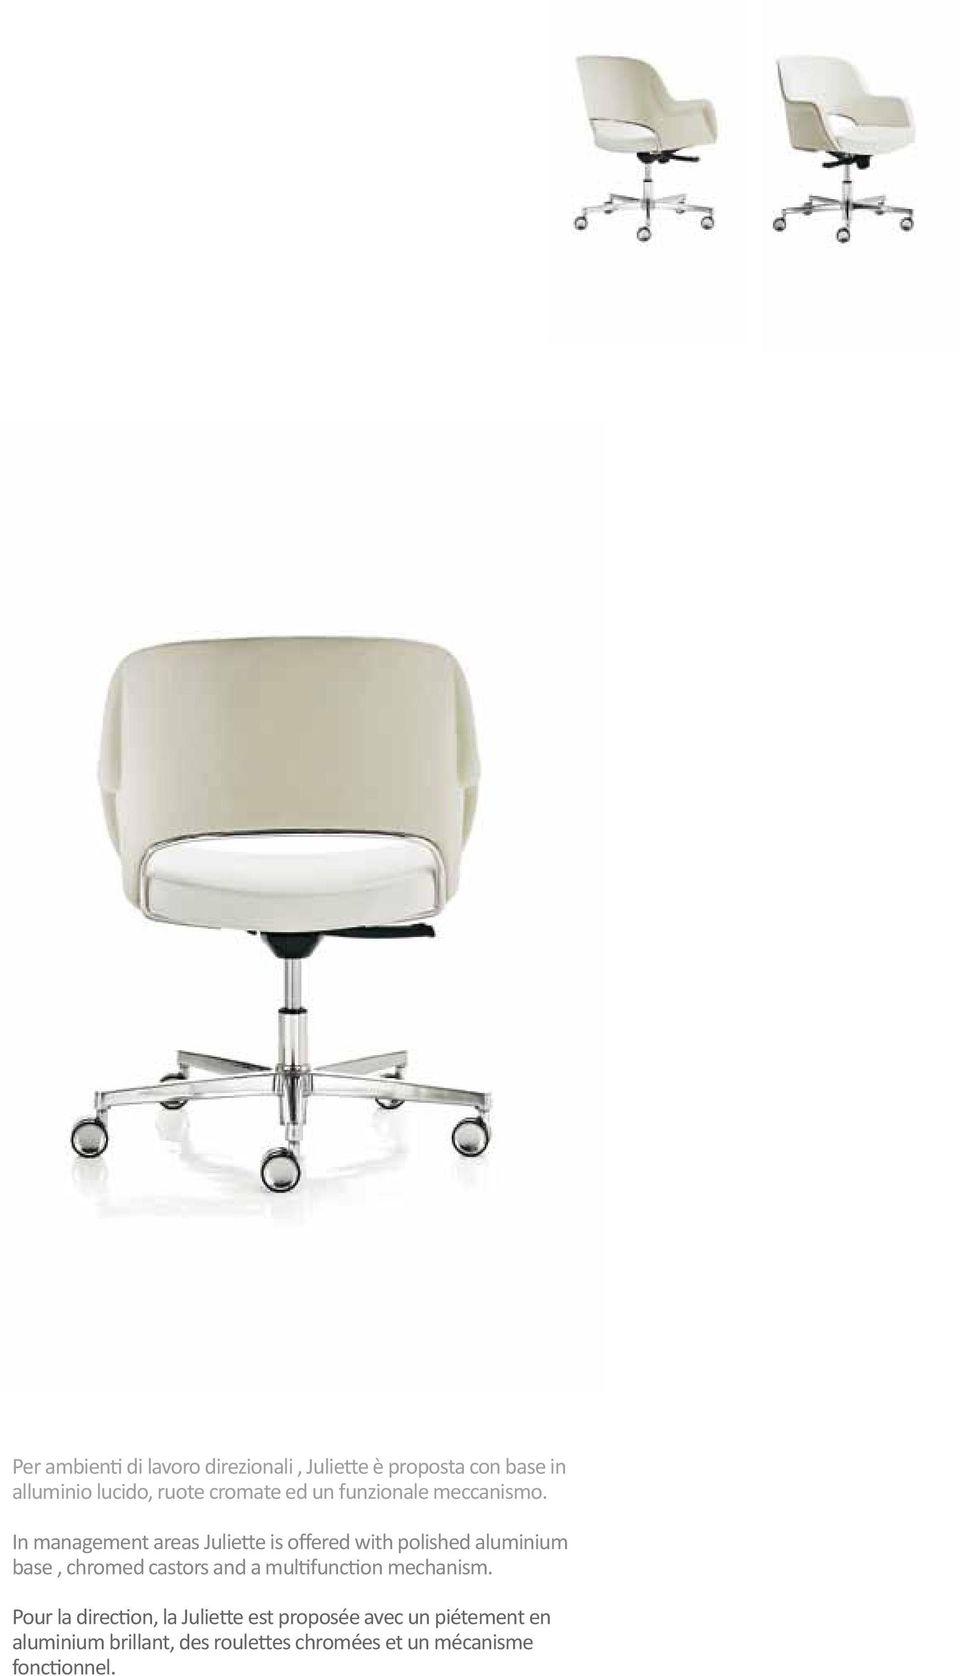 In management areas Juliette is offered with polished aluminium base, chromed castors and a